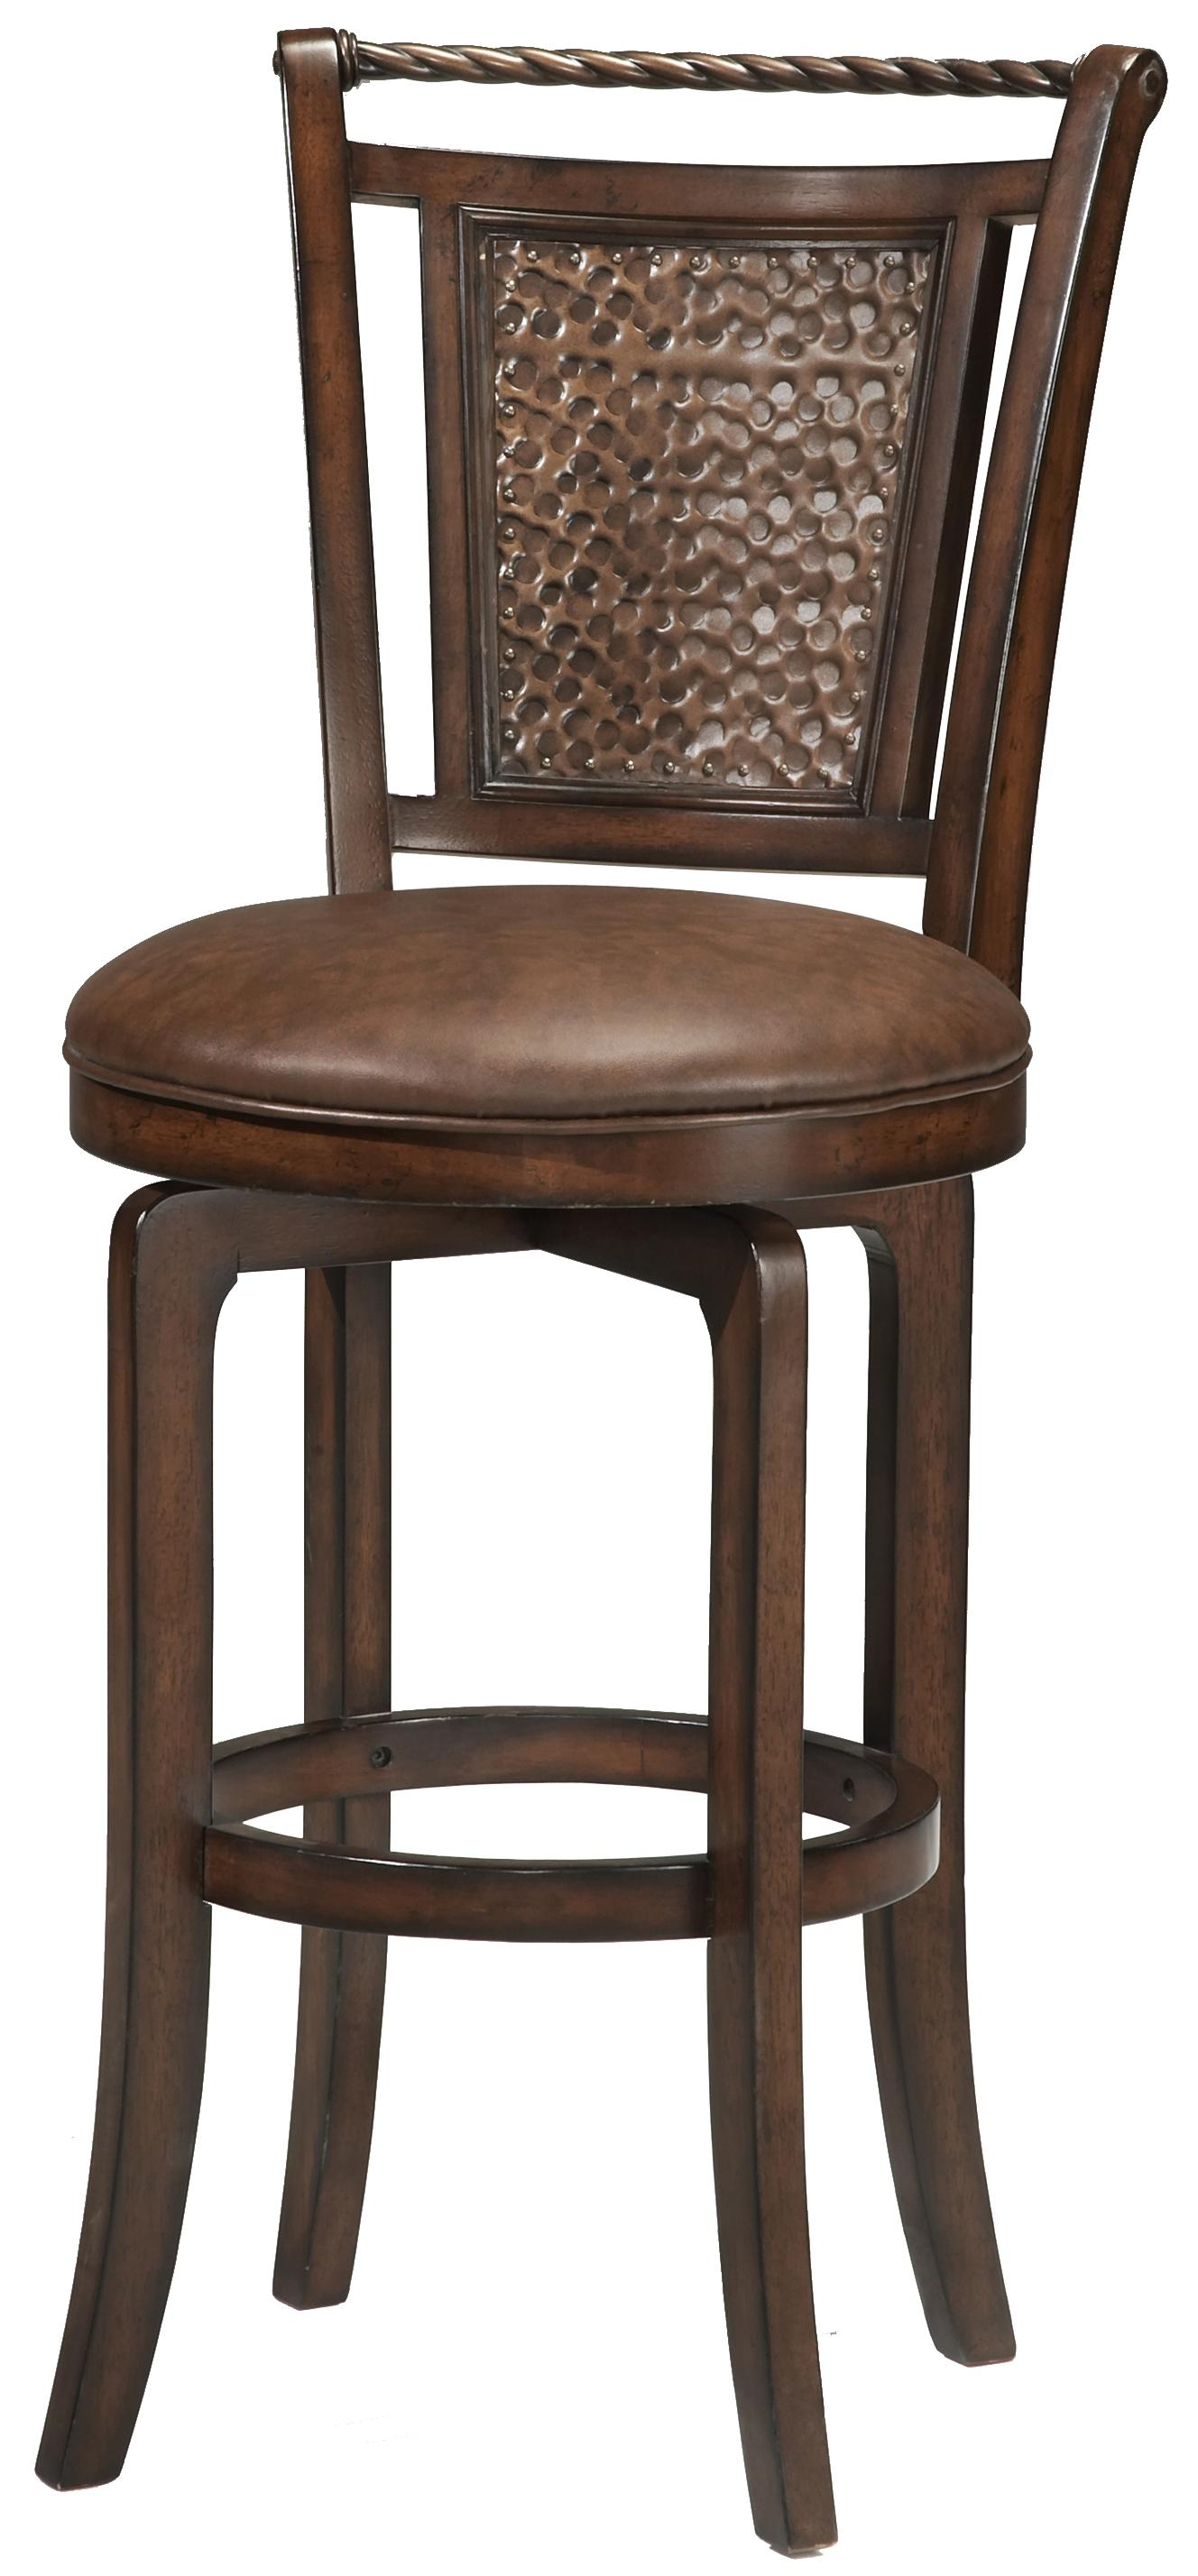 "Hillsdale Wood Stools 26.5"" Counter Height Norwood Swivel Stool - Item Number: 4935-827S"